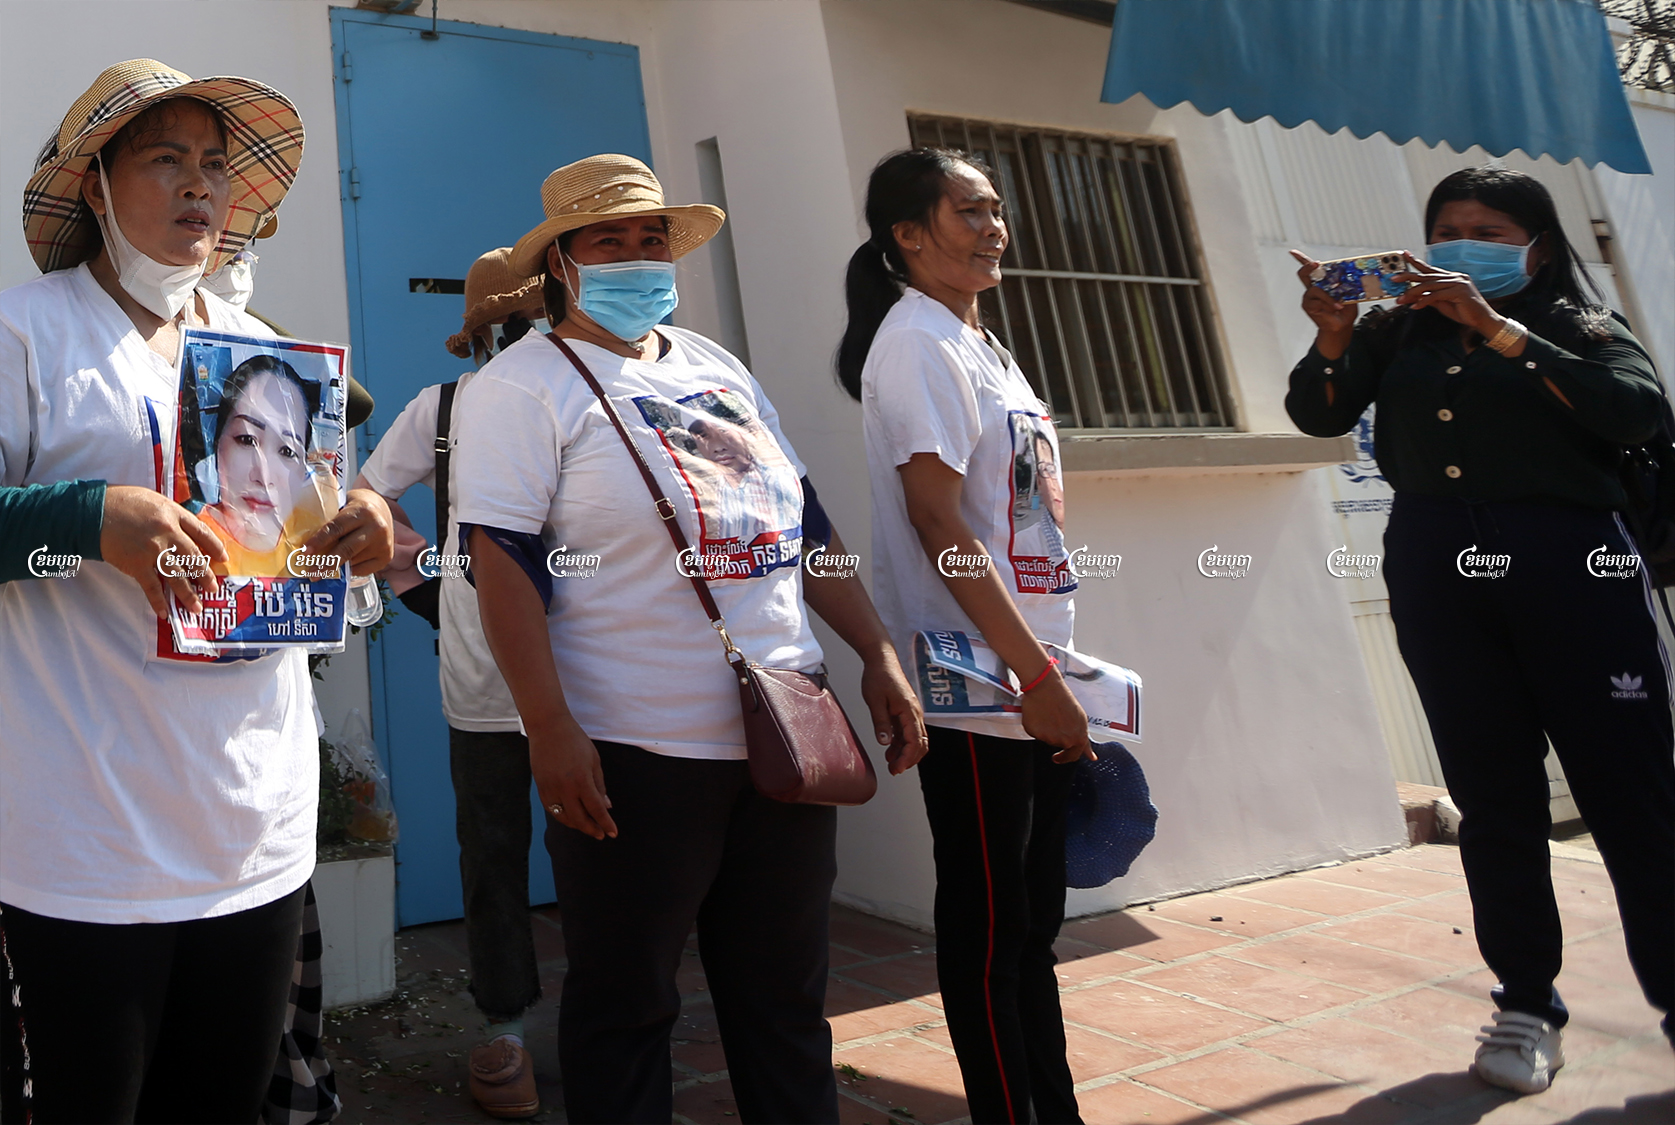 A woman broadcasts a Facebook live video of a protest outside the UN office in Cambodia carried out by family members of former opposition activists. Picture taken on June 4, 2021. CamboJA/ Pring Samrang